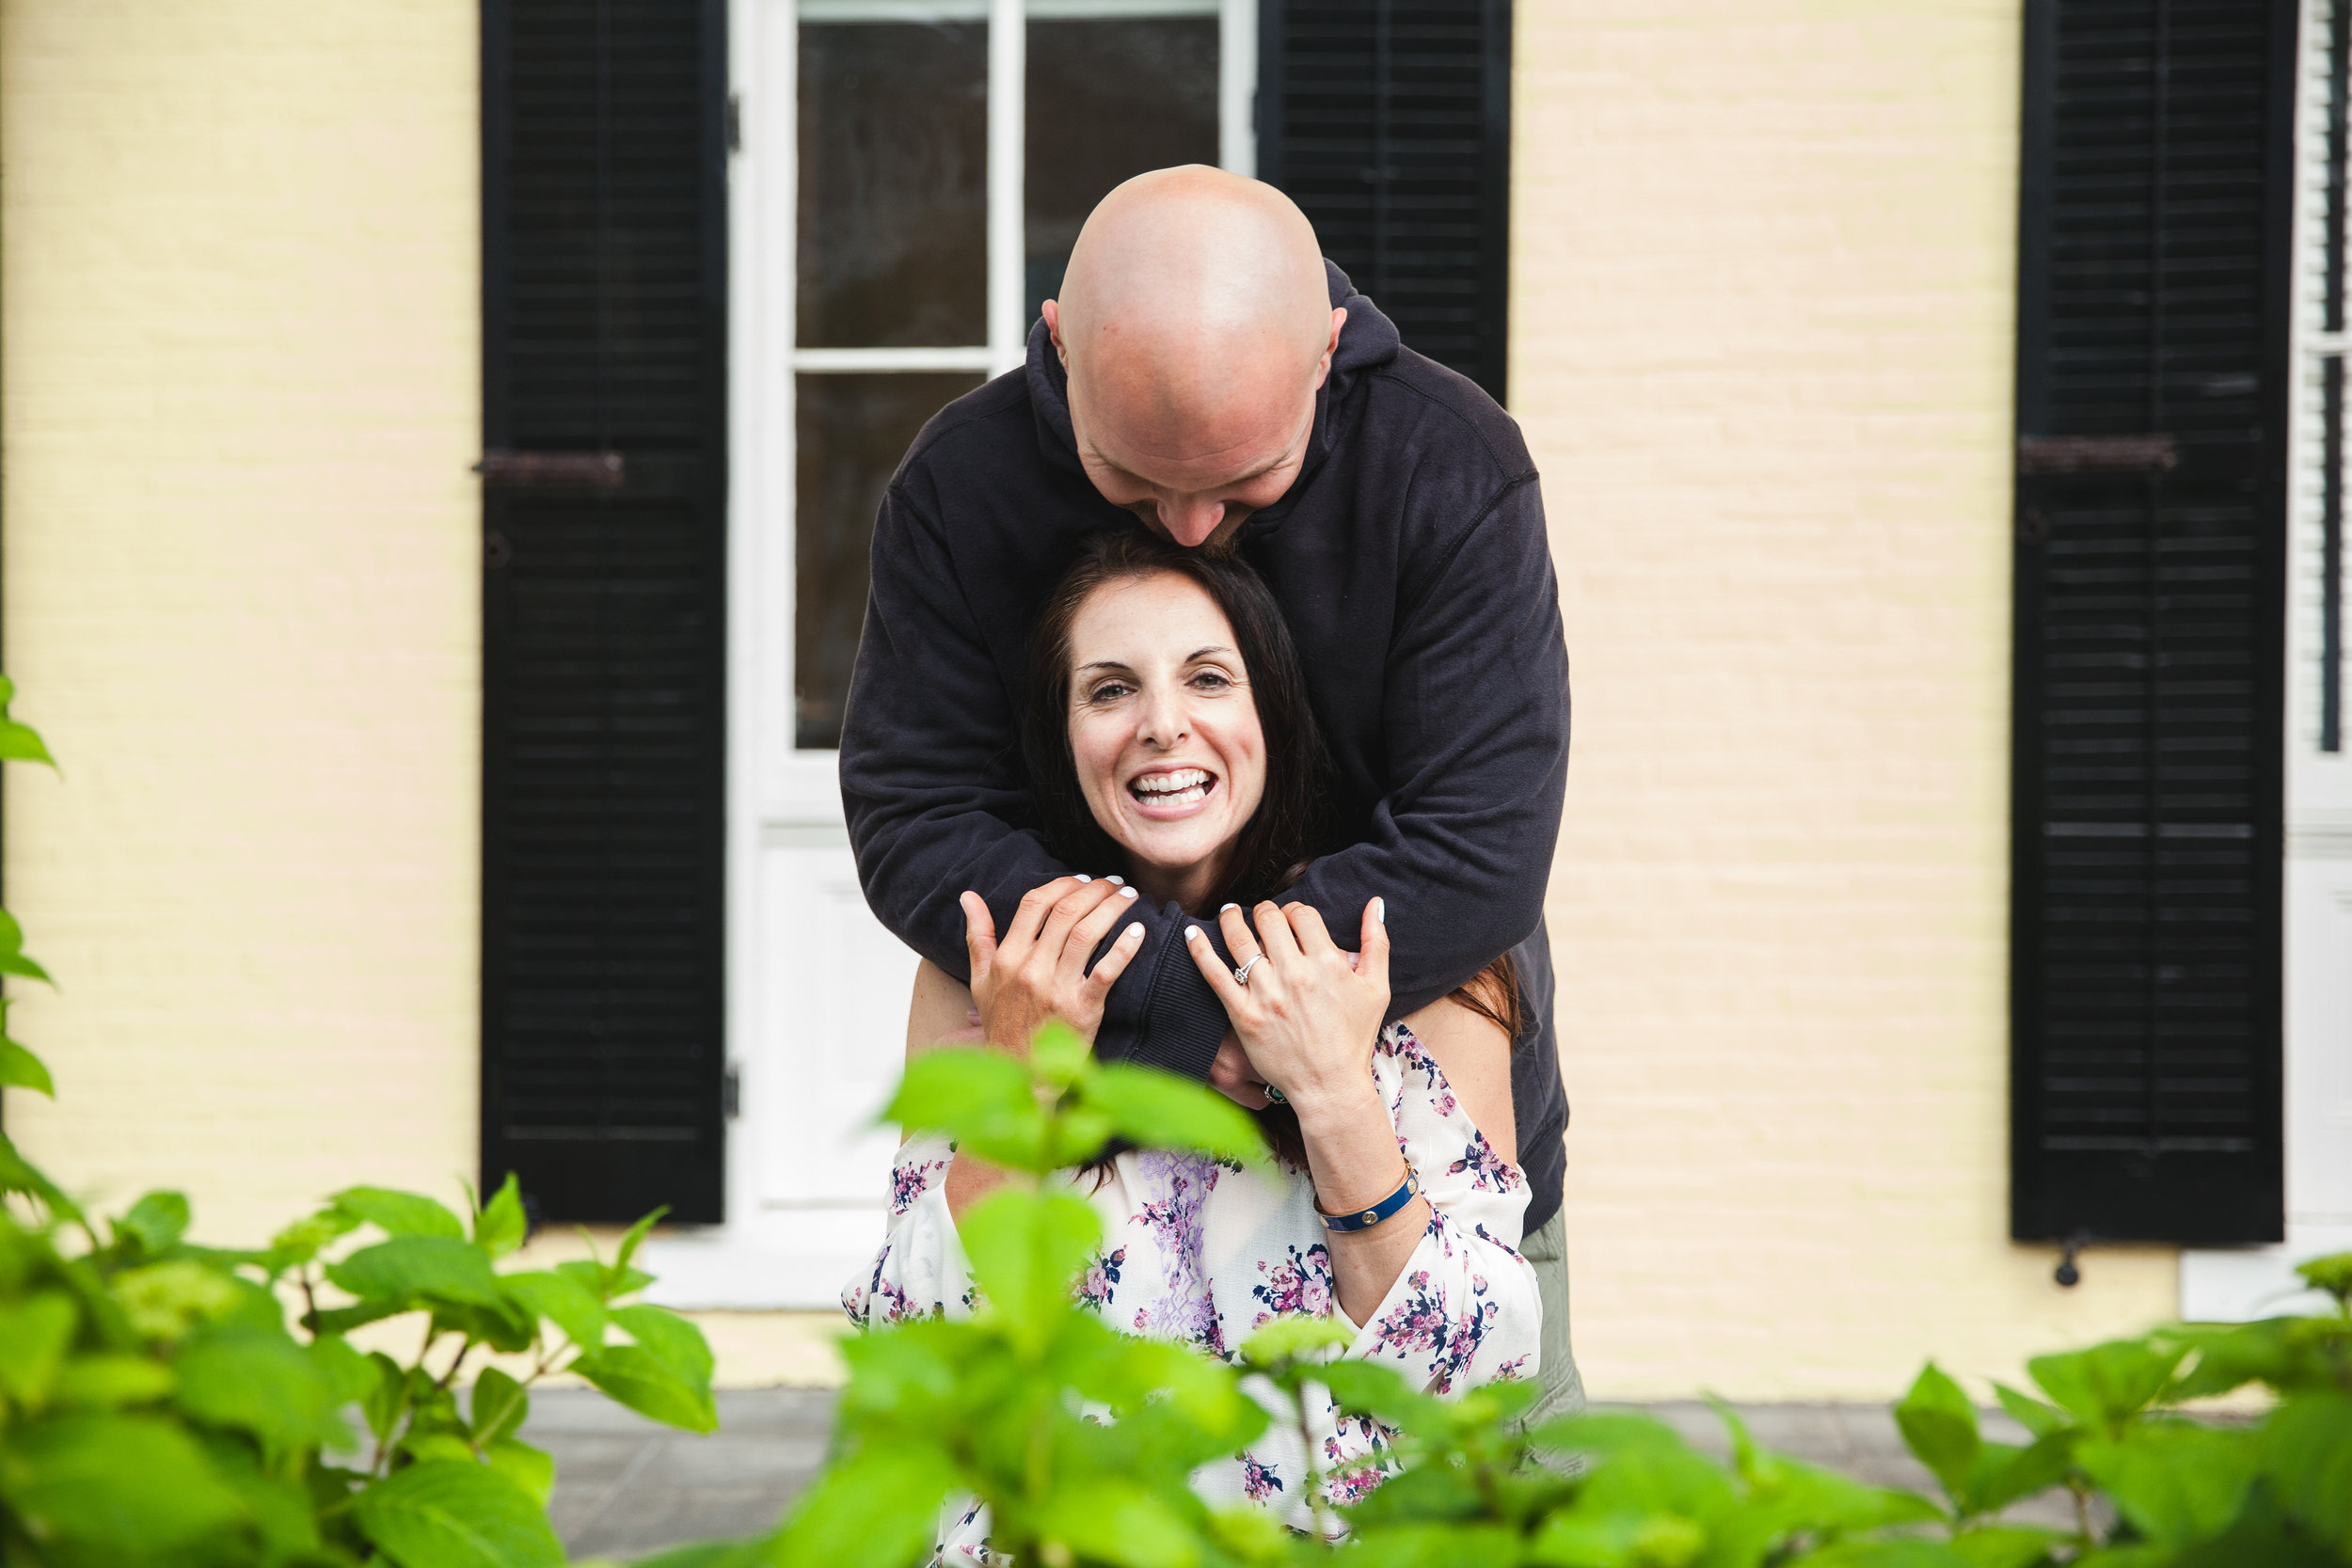 StaceyandJohnEngagementPrints-91.jpg